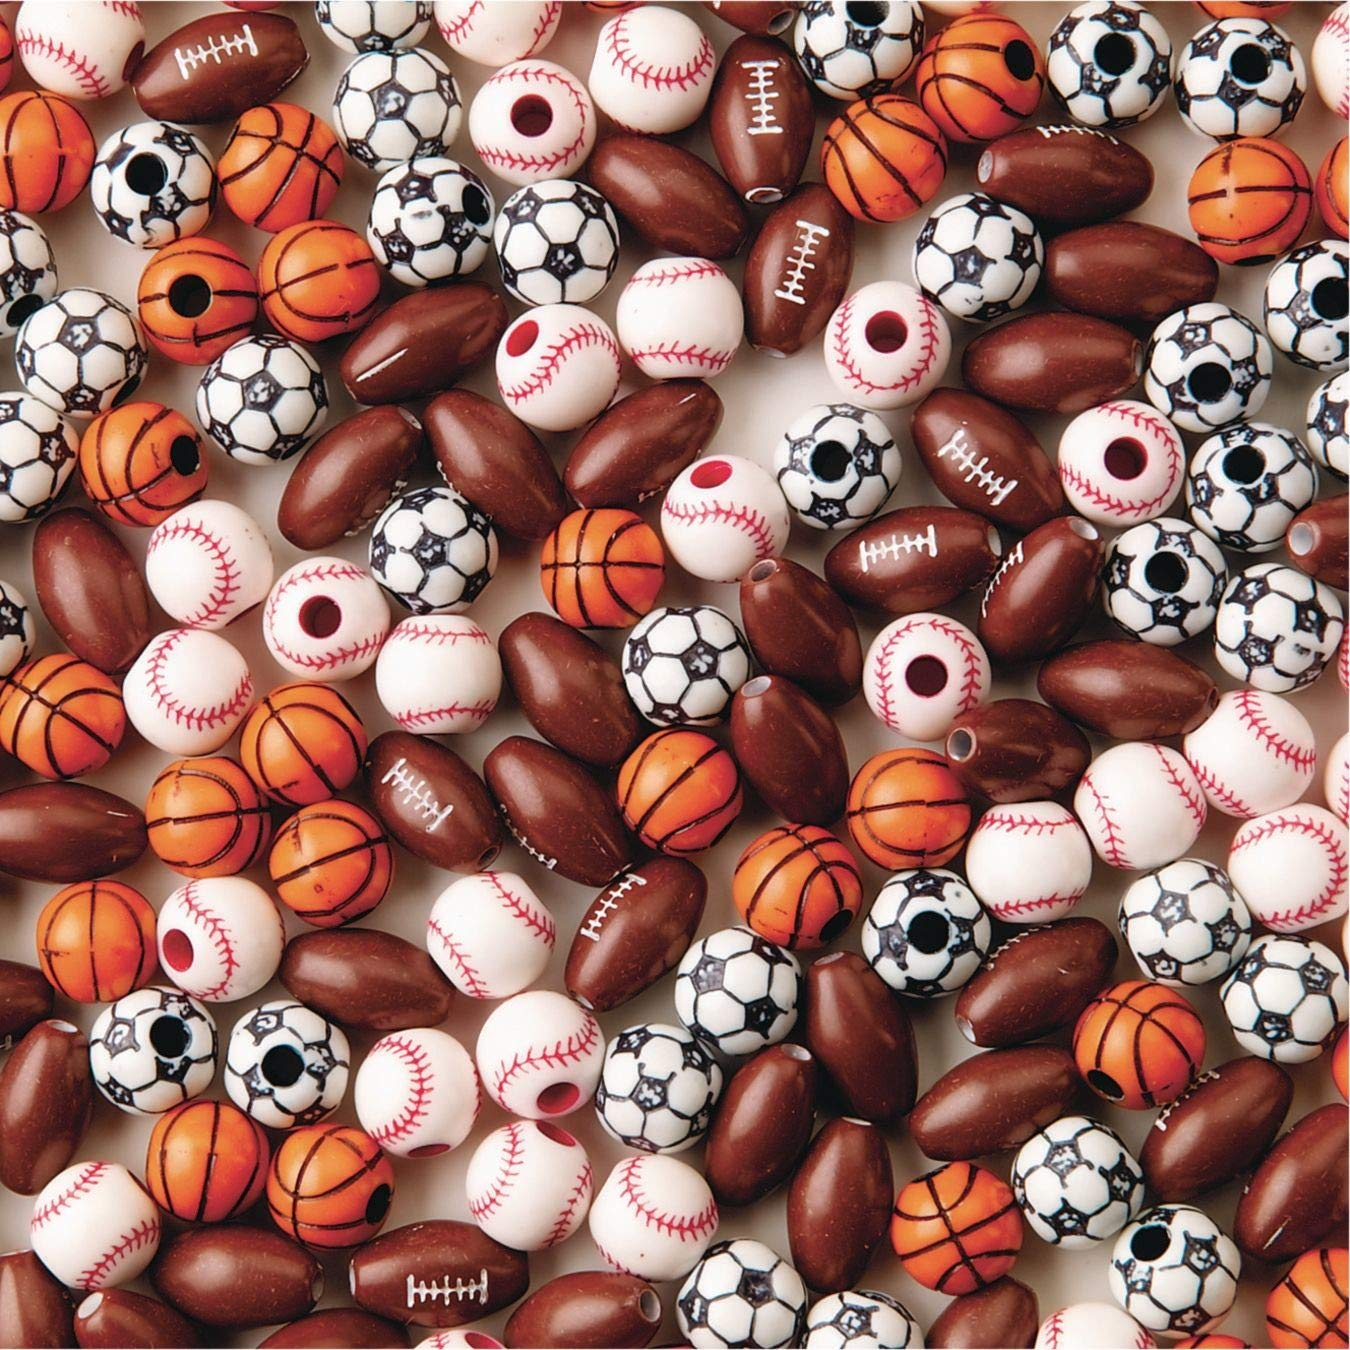 S&S Worldwide Color Splash! Sport Bead Assortment (Bag of 144), Assorted, 12mm to 15mm